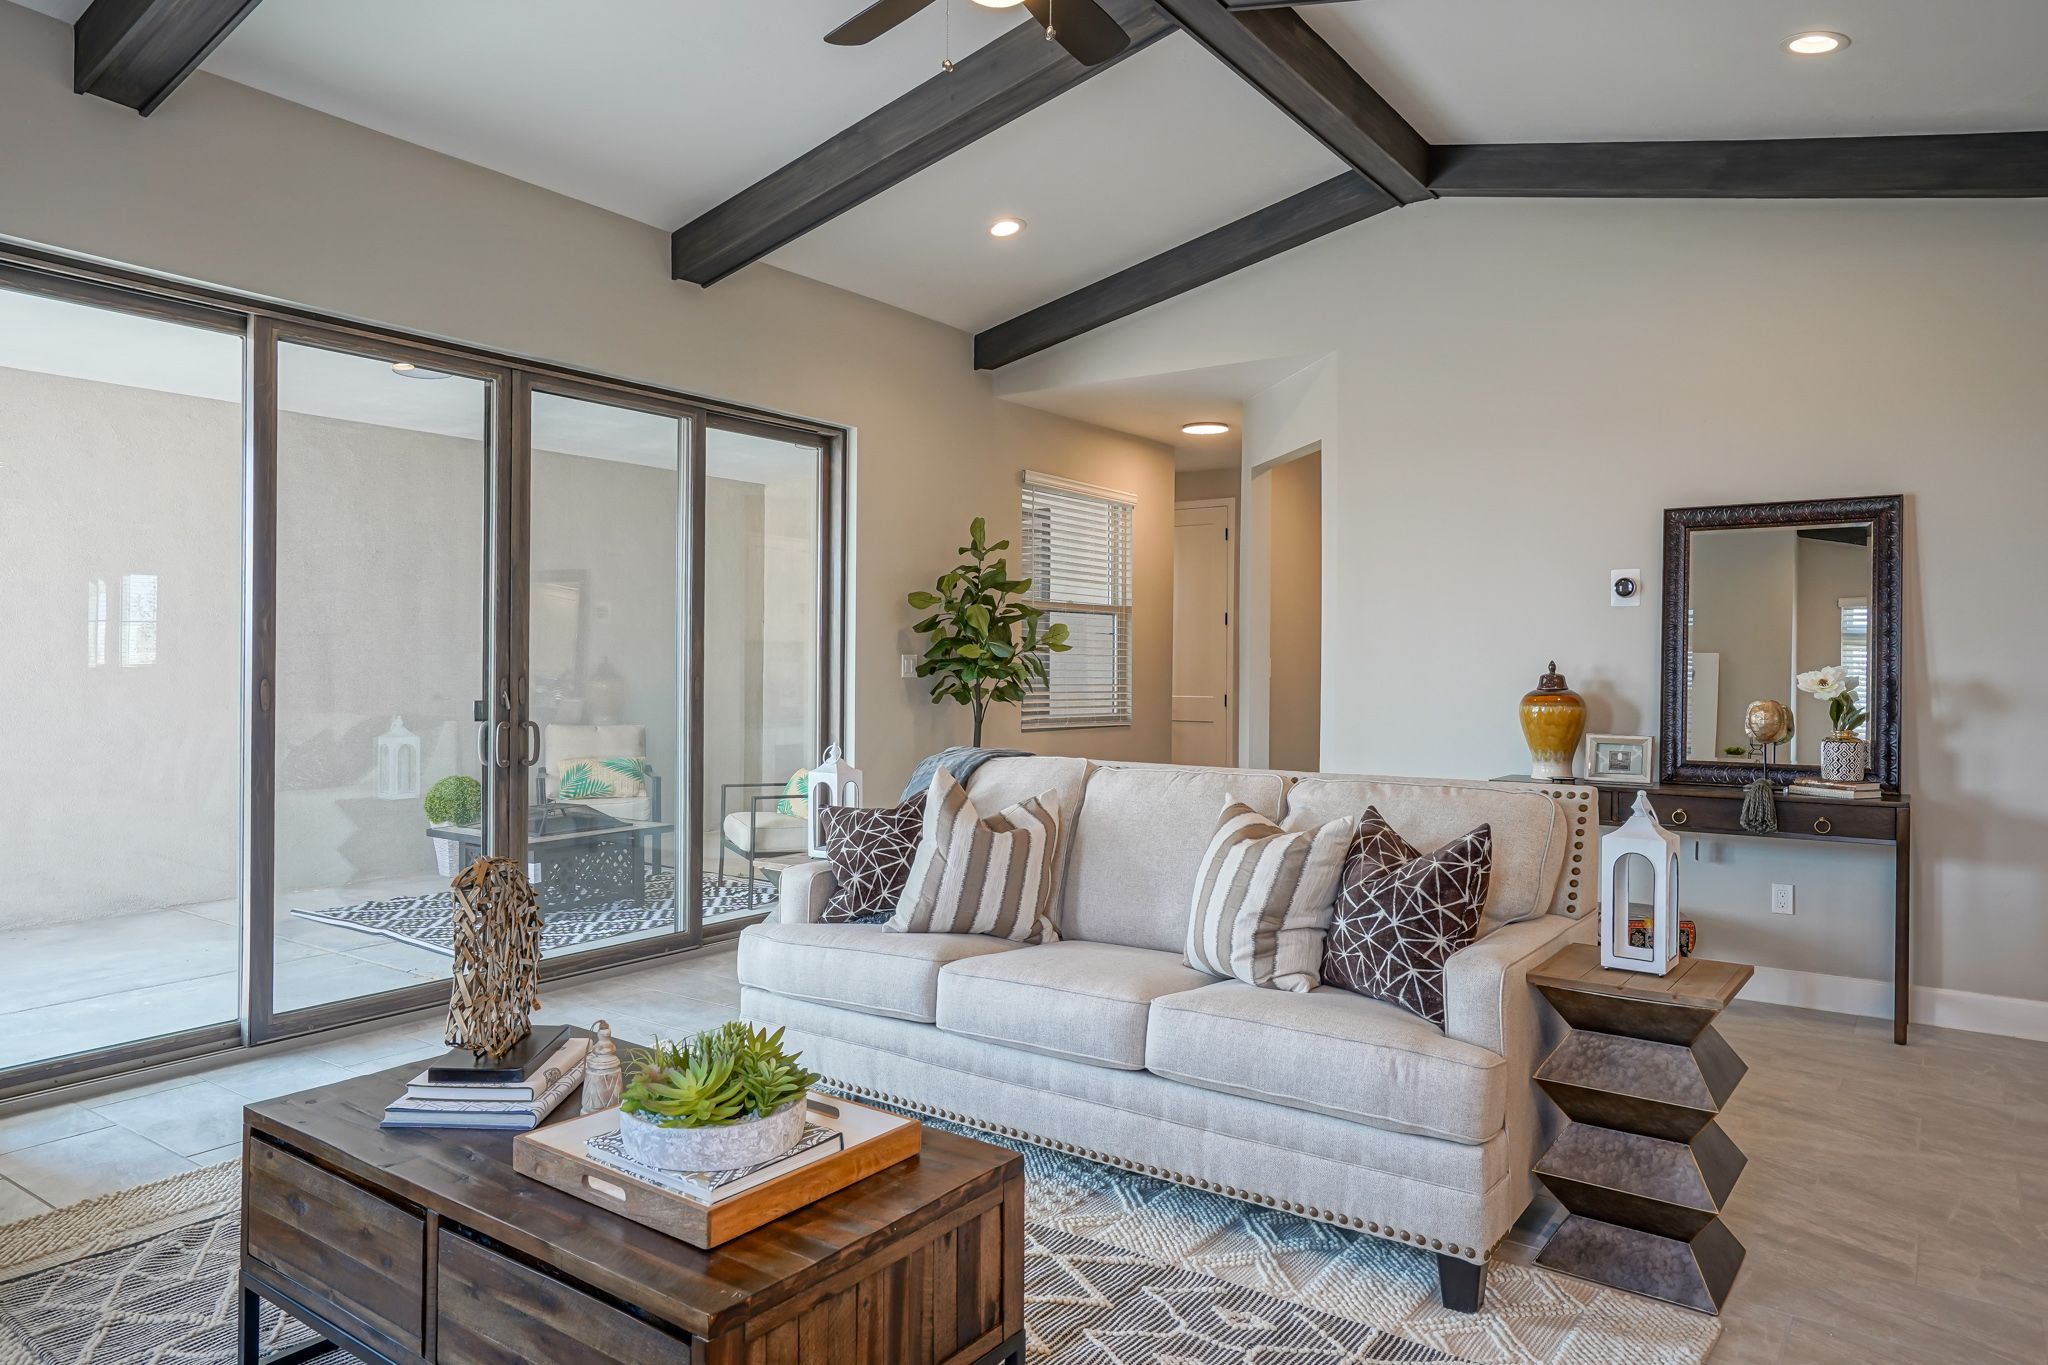 Living Area featured in The Stout By Abrazo Homes in Albuquerque, NM